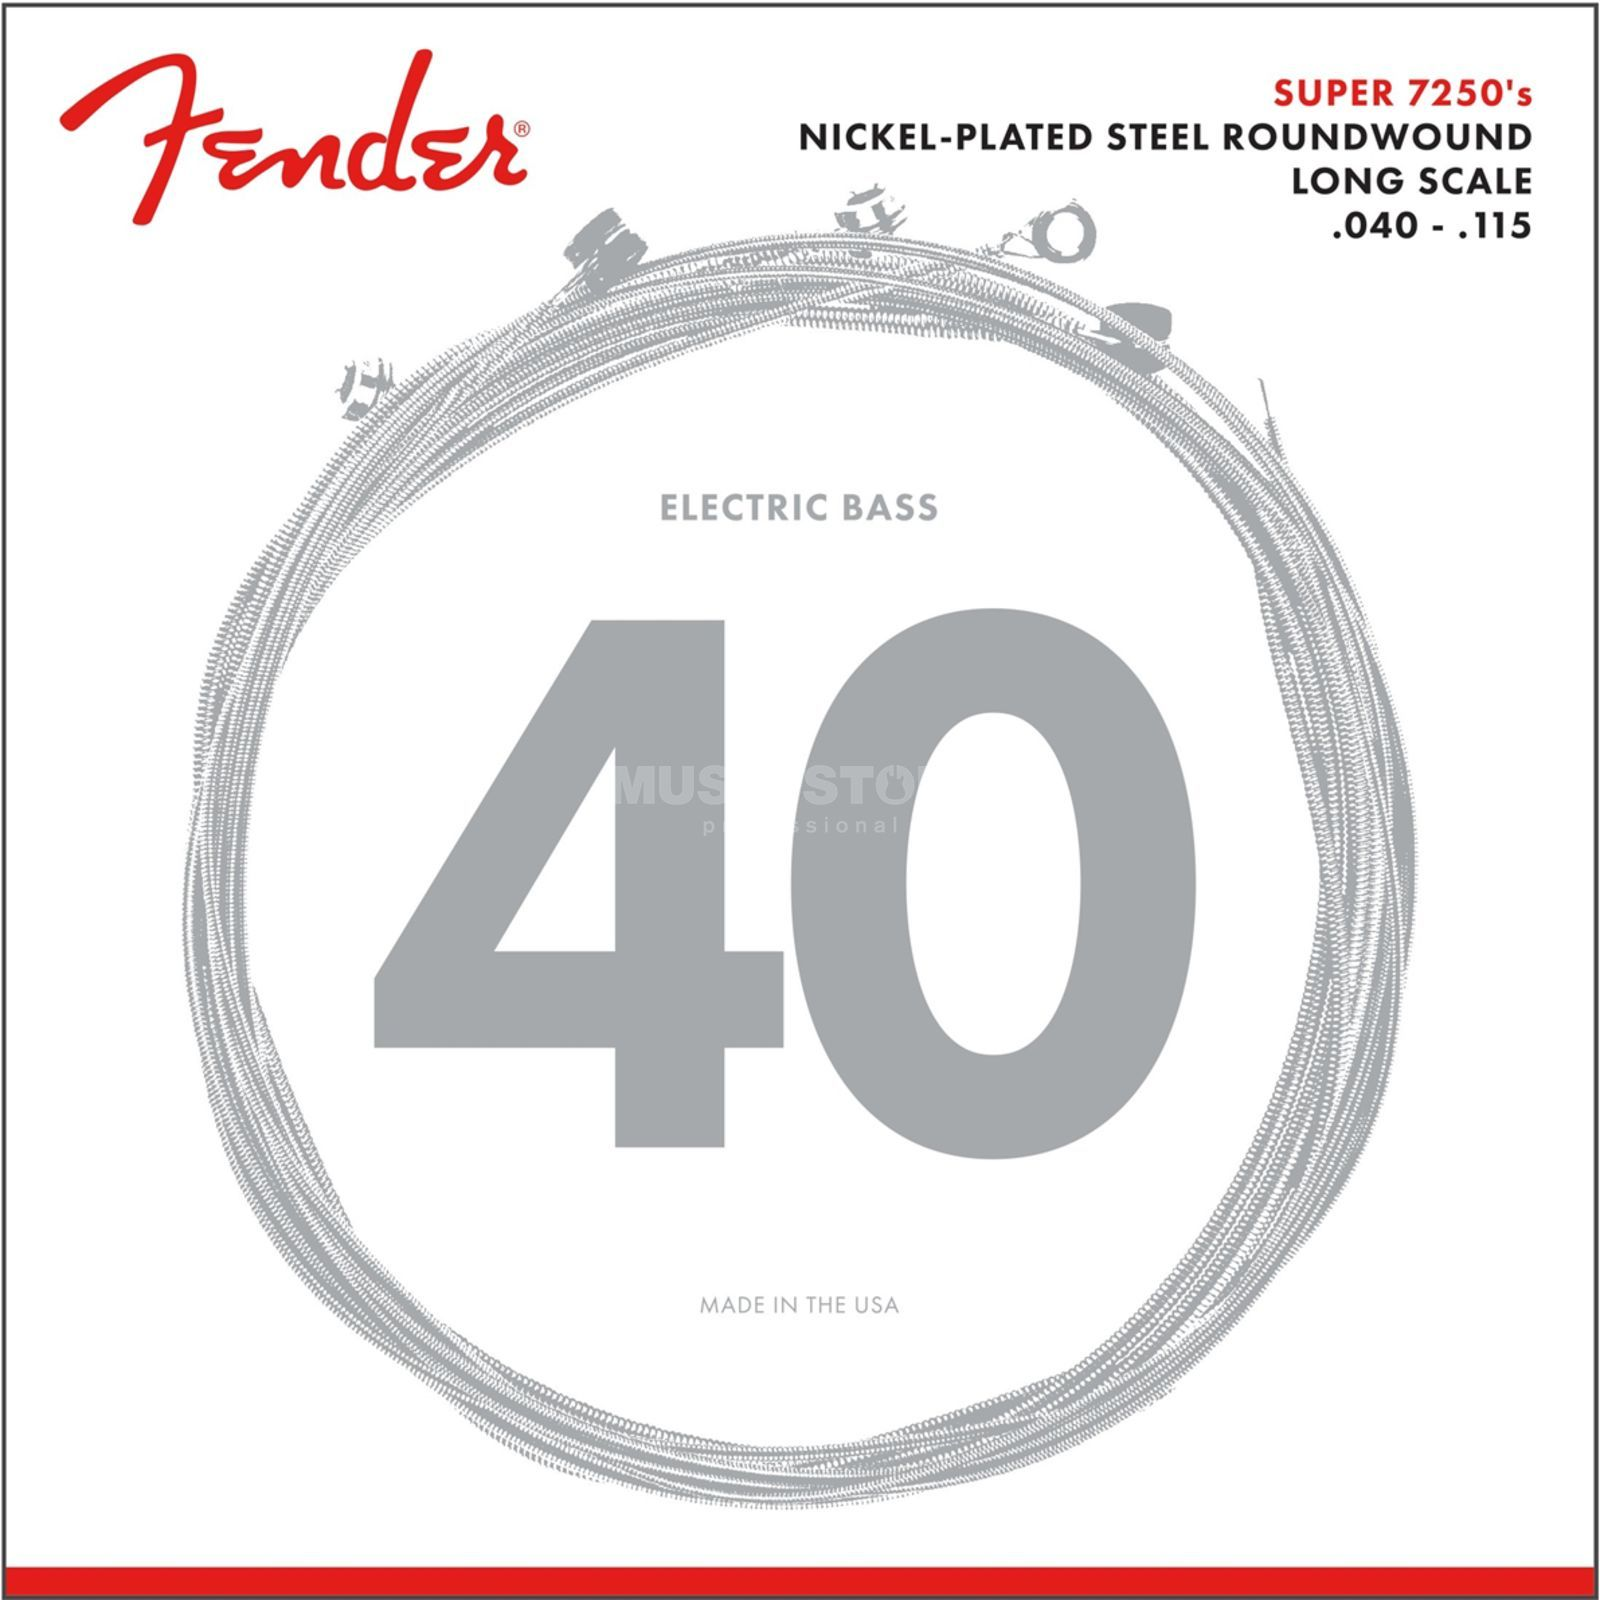 Fender Strings Super 7250 5L 40-115 Nickel Plated Steel, Roundwound, Longscale Изображение товара